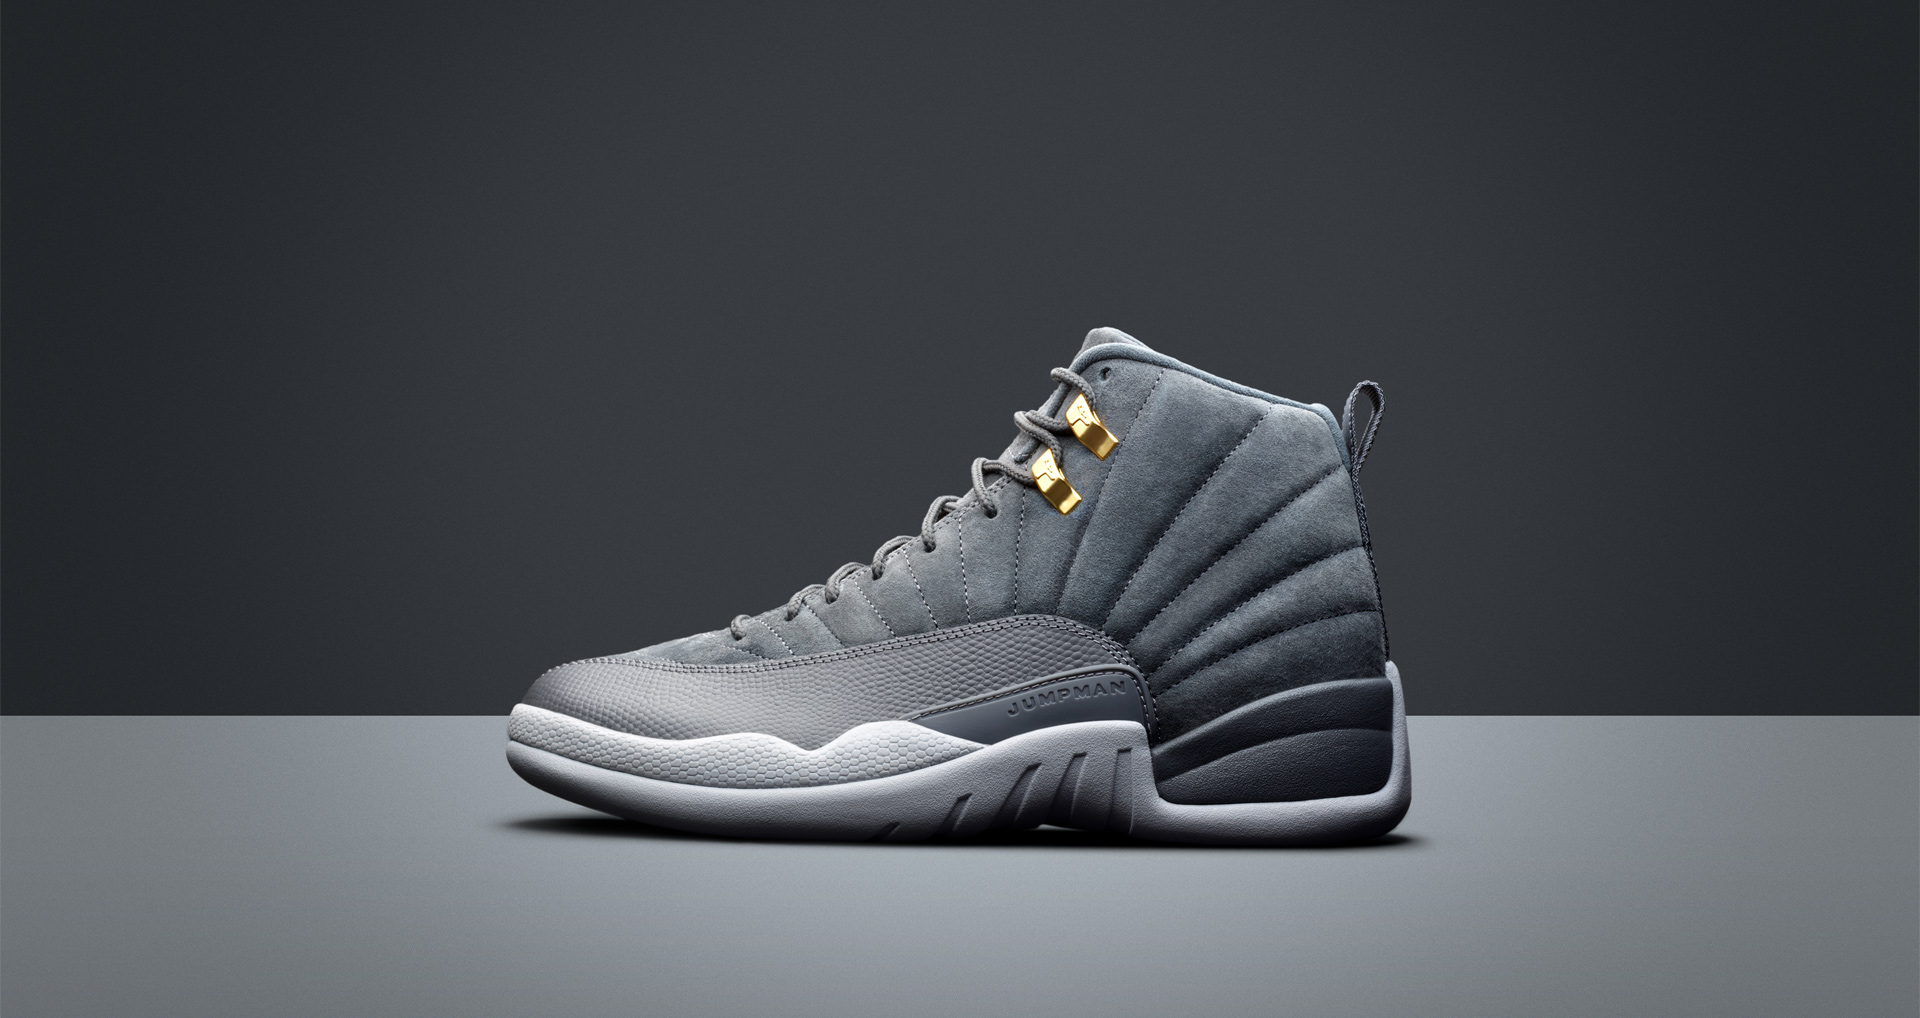 nike-air-jordan-12-retro-dark-grey-130690-005-release-20171118